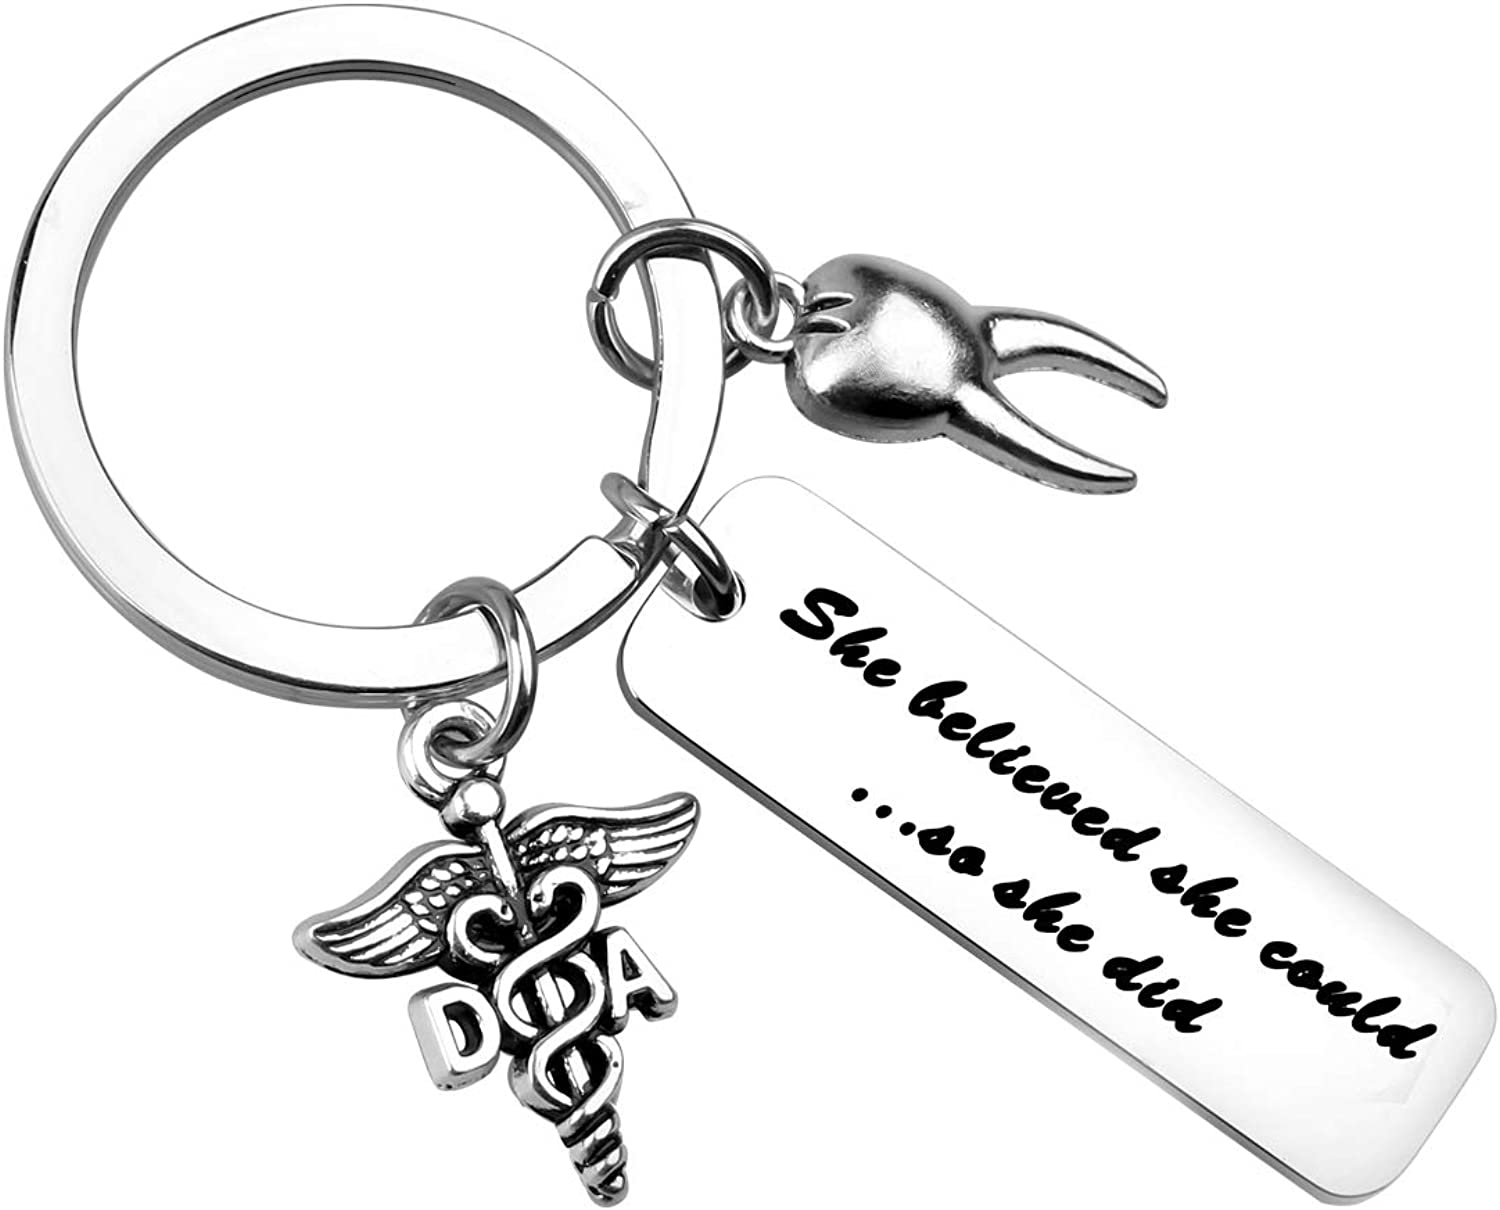 WSNANG Dentist Mom Dad Gift Im a Dentist and a Mom//Dad Nothing Scares Me Keychain Dental Hygienist Gift Dentist Retirement Gift Appreciation Gift for Dentist Mom Dad